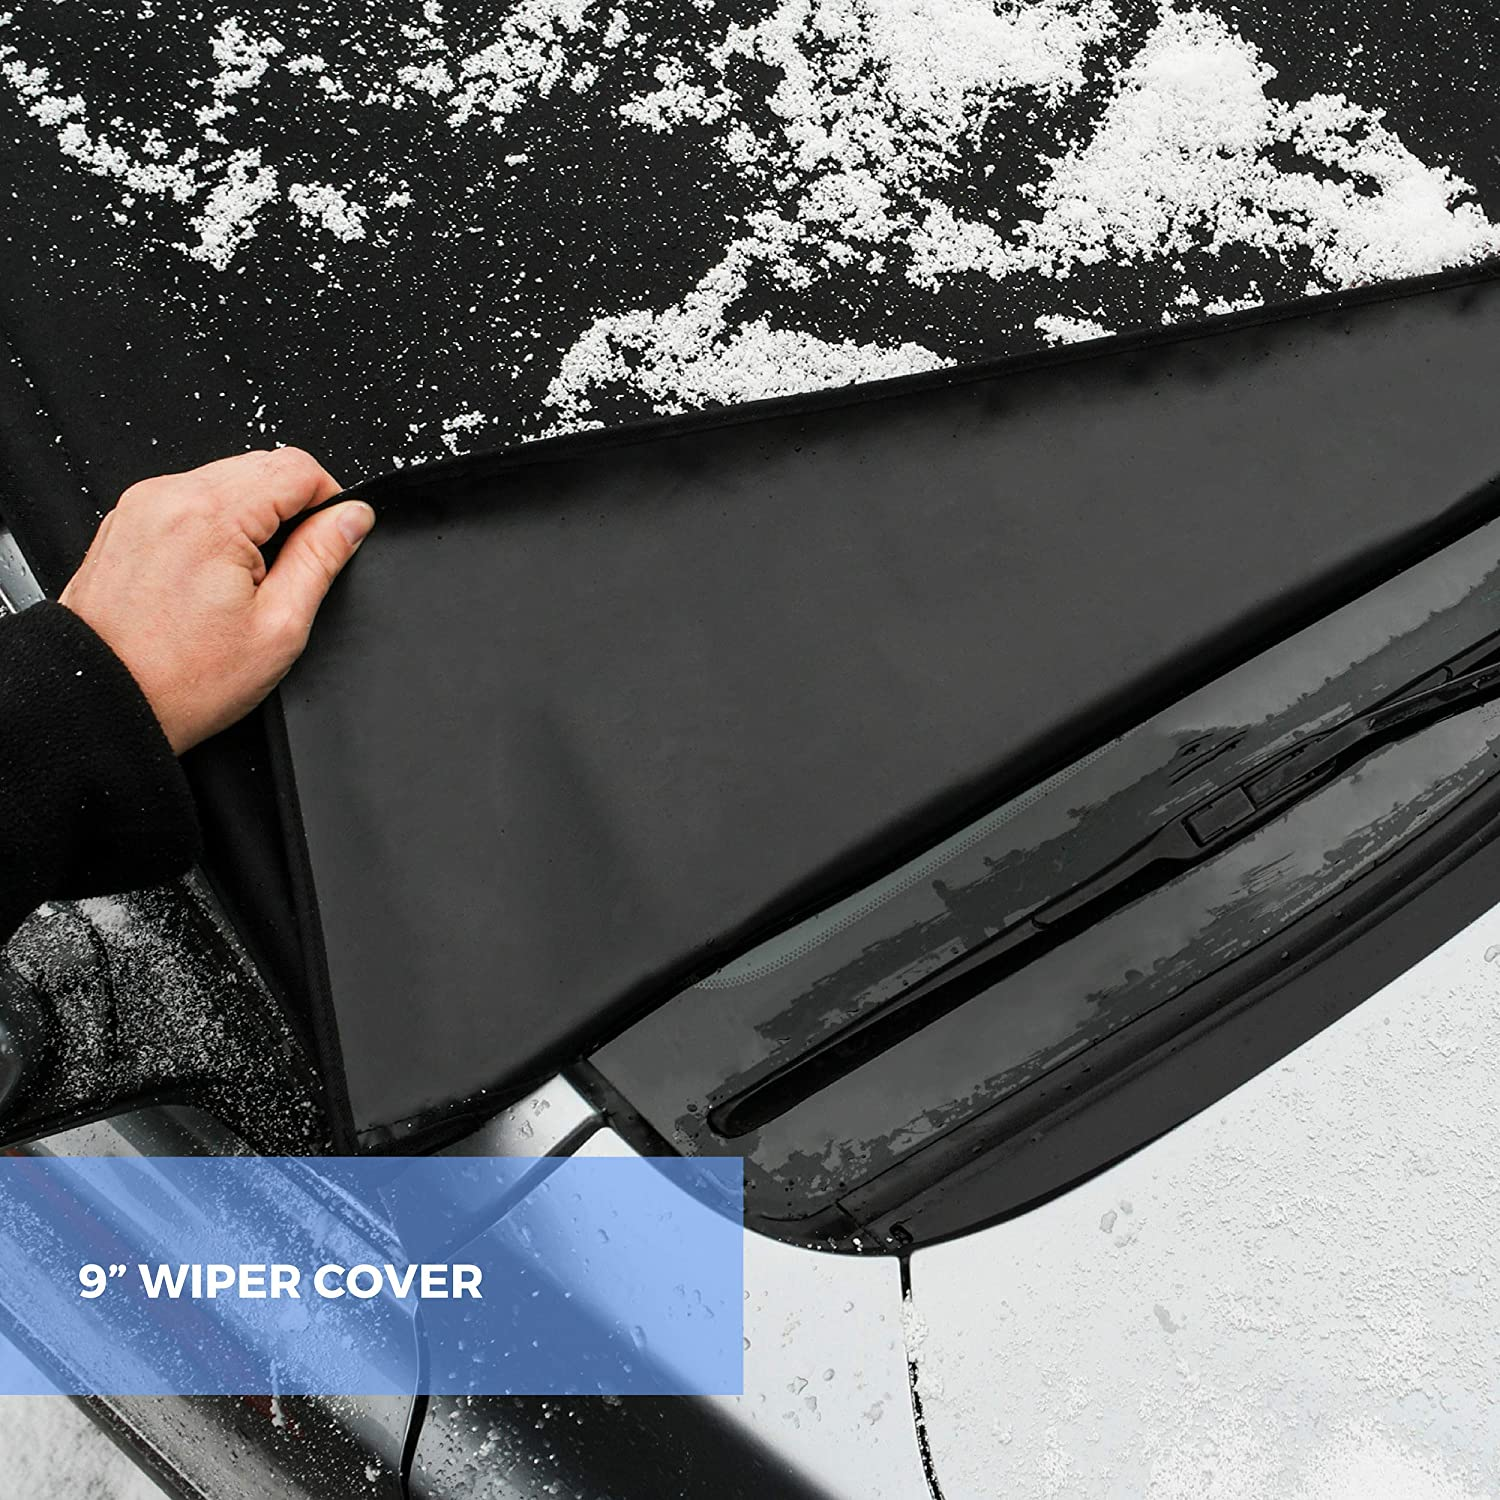 FrostGuard Signature Protects from Snow Premium Winter Windshield Cover with Security Panel and Wiper Cover Ice and Frost 4350433120